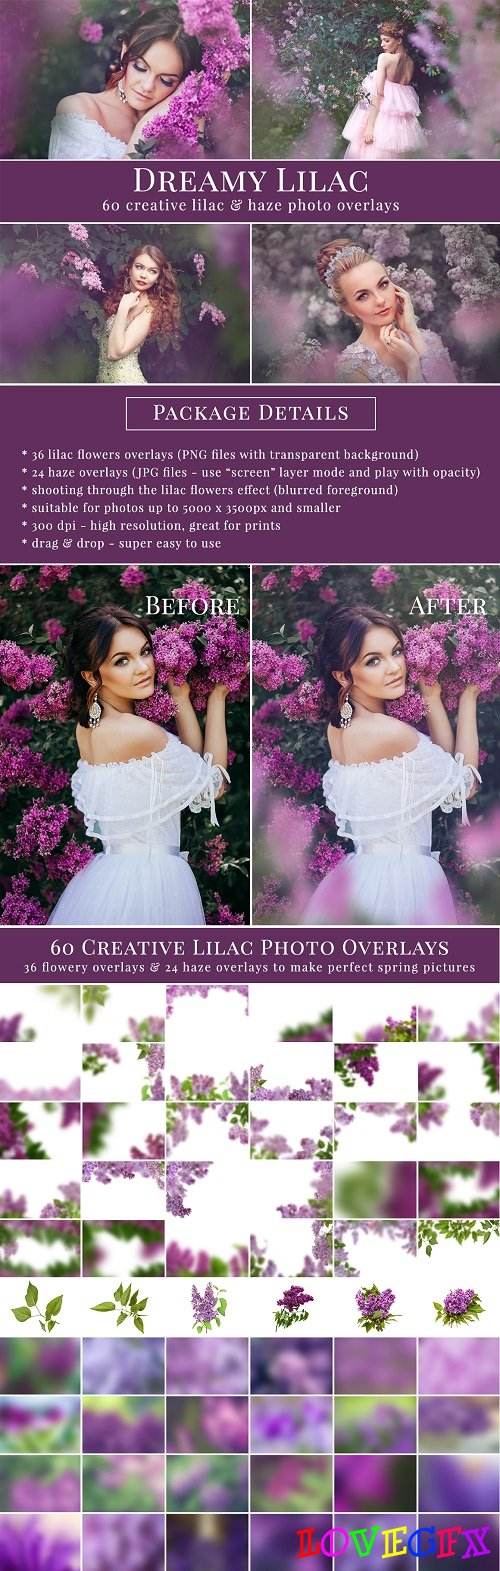 Dreamy Lilac photo overlays 2348731